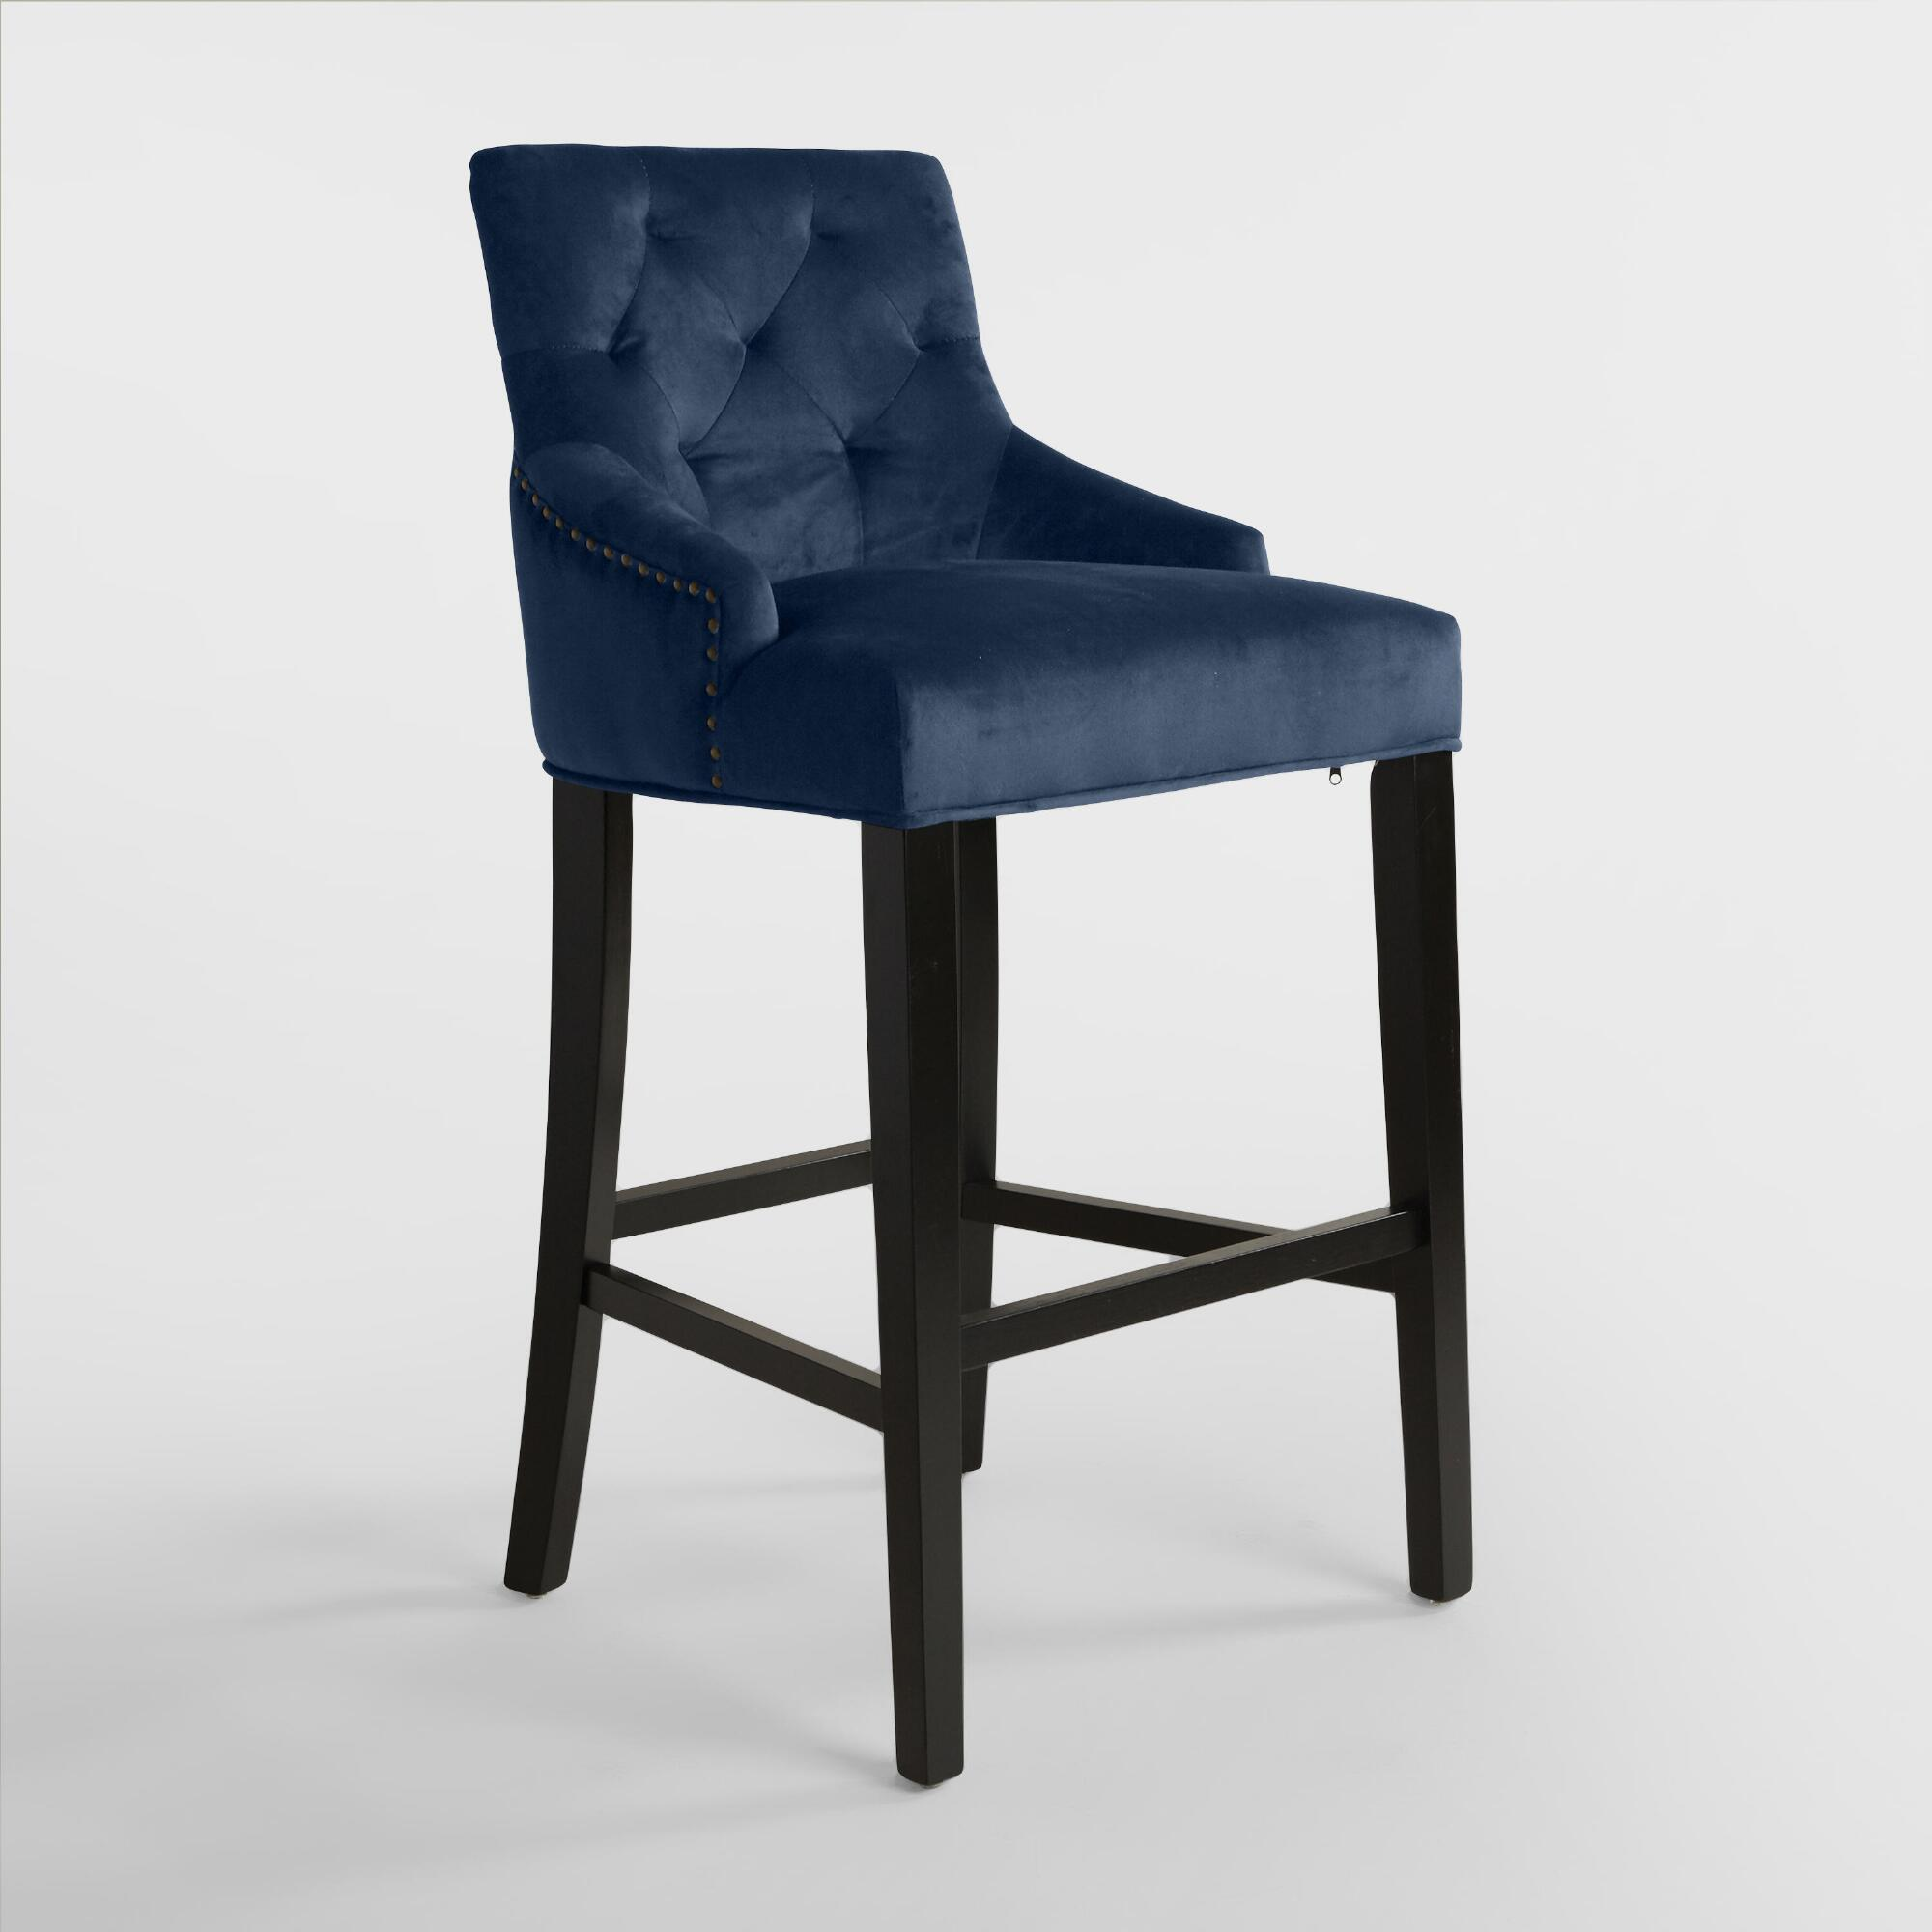 size of leather color navy carmilla on swivel stool na frightening kitchen height winning stools bar blue in archived damask awesome furniture full blueer ideas